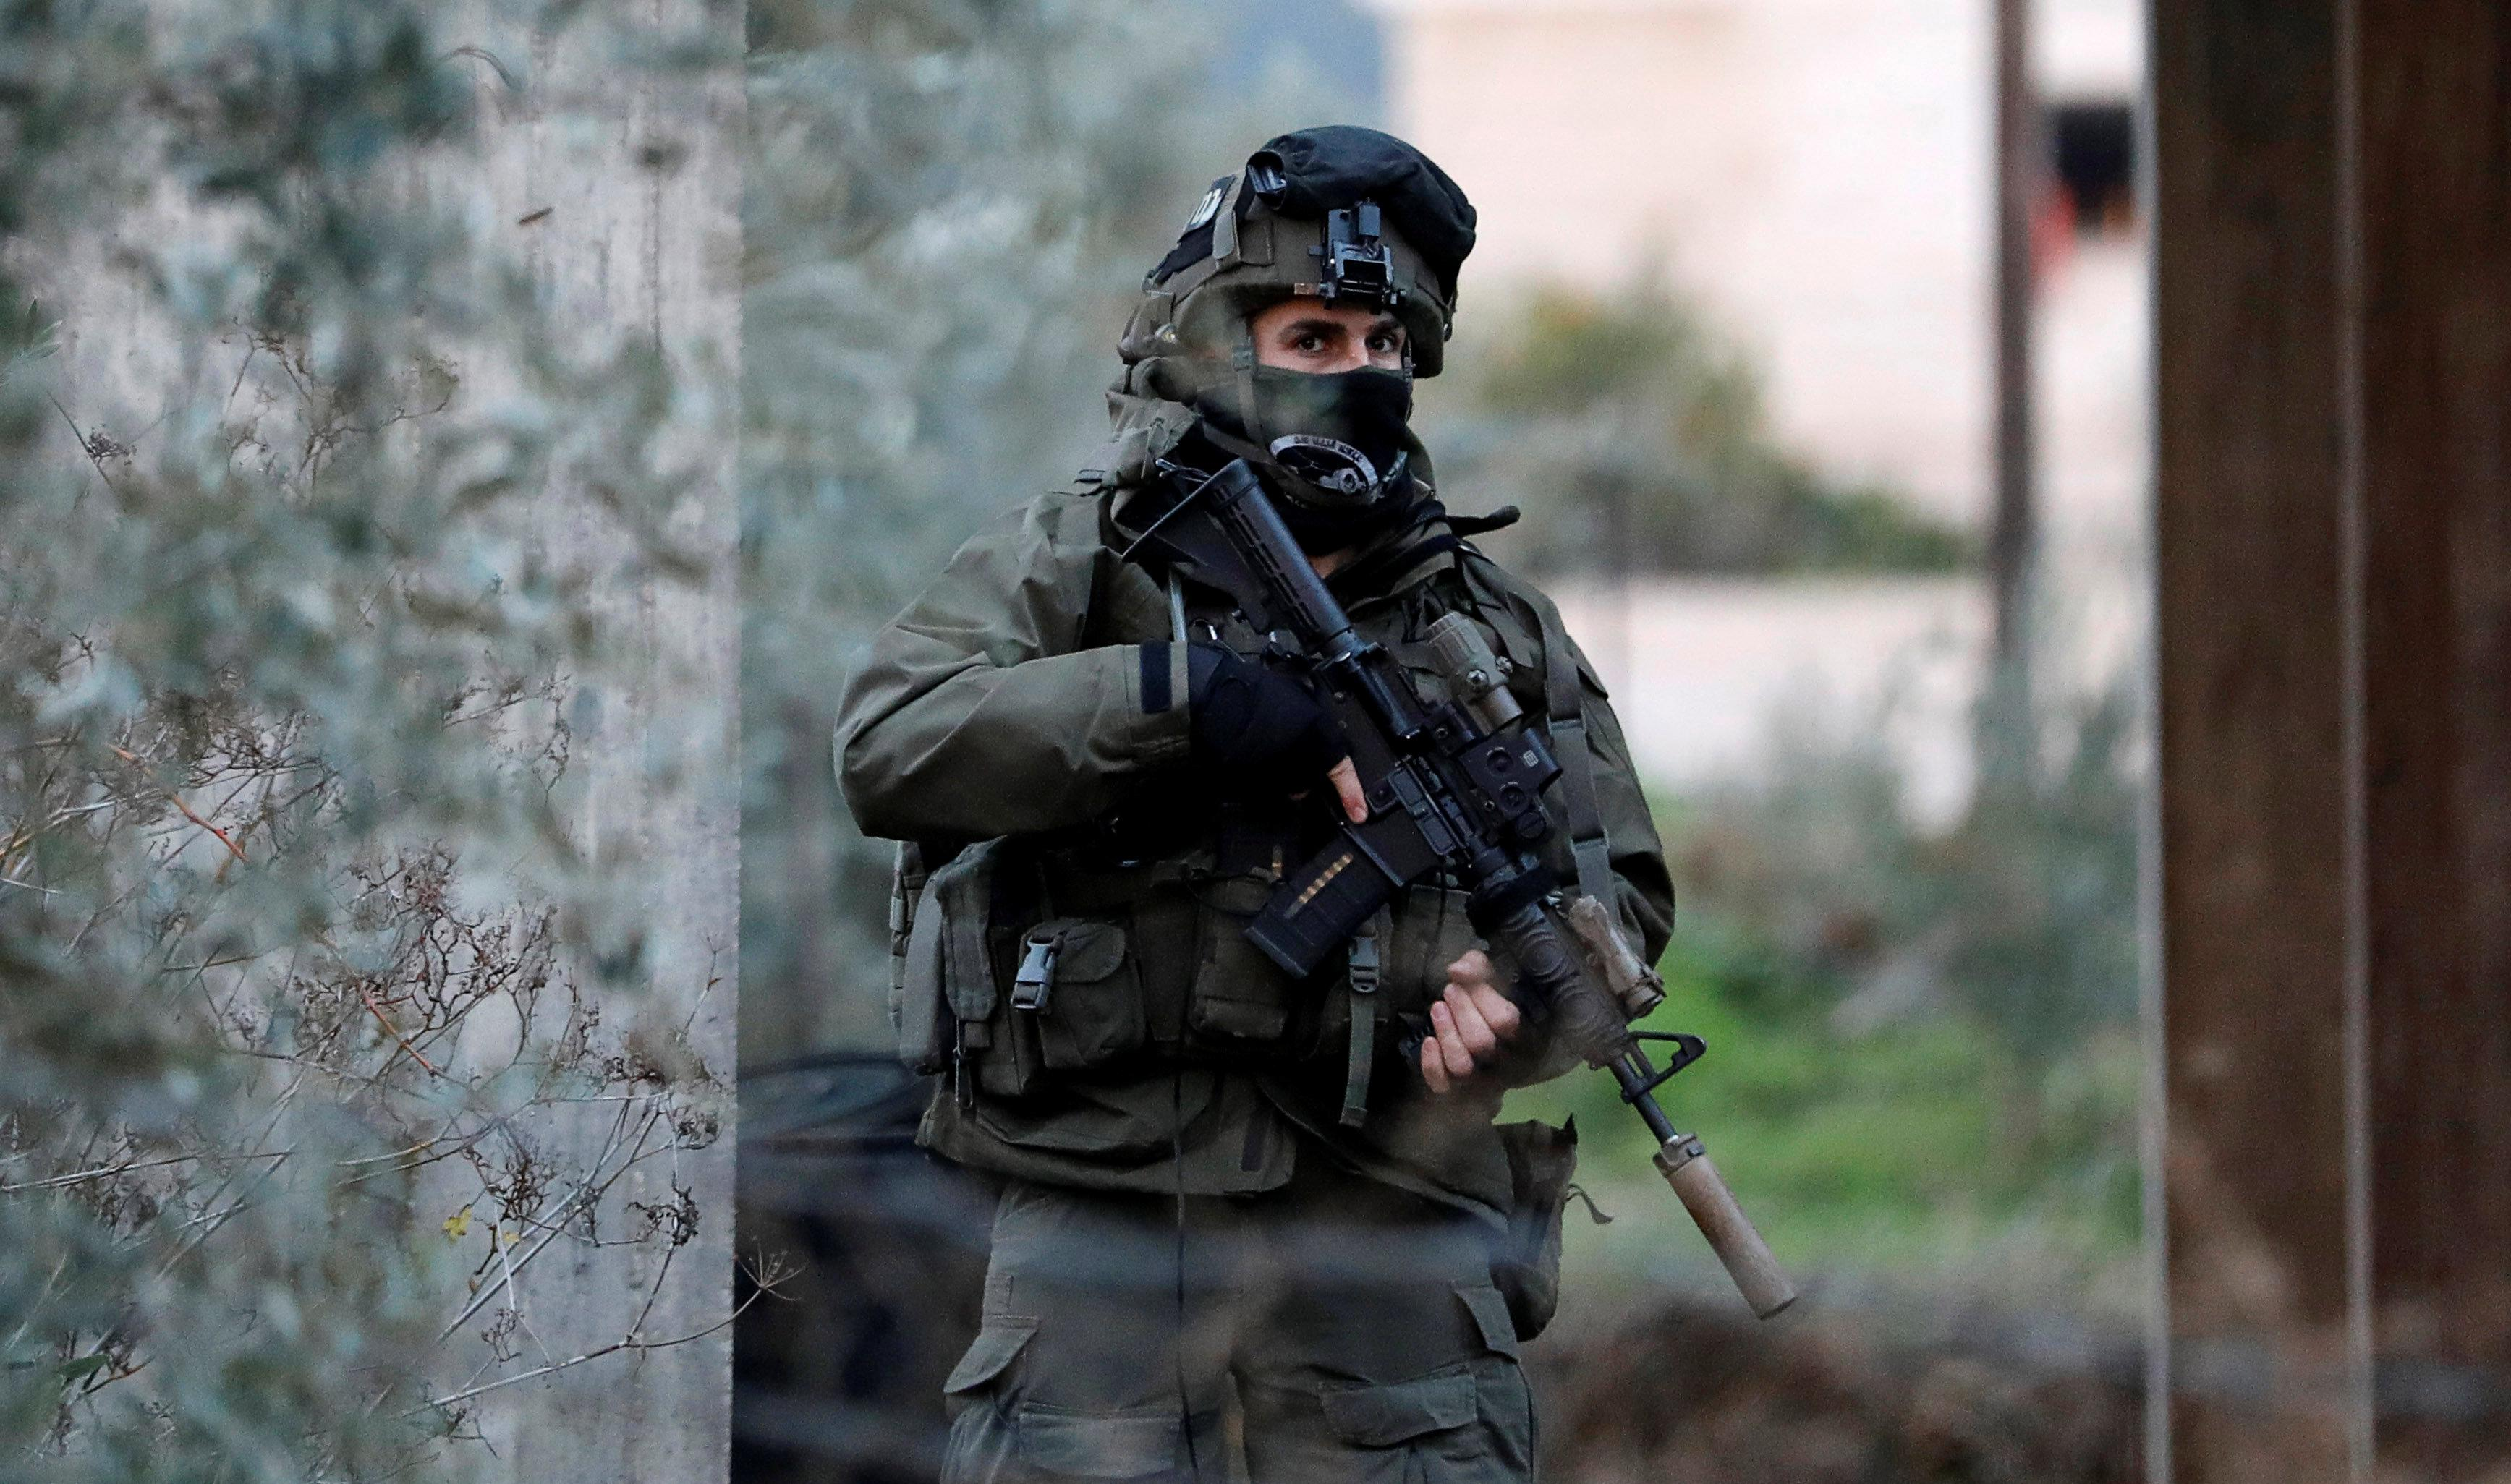 A member of Israeli armed forces is seen during a raid in the West Bank city of Jenin, January 18, 2018. Mohamad Torokman